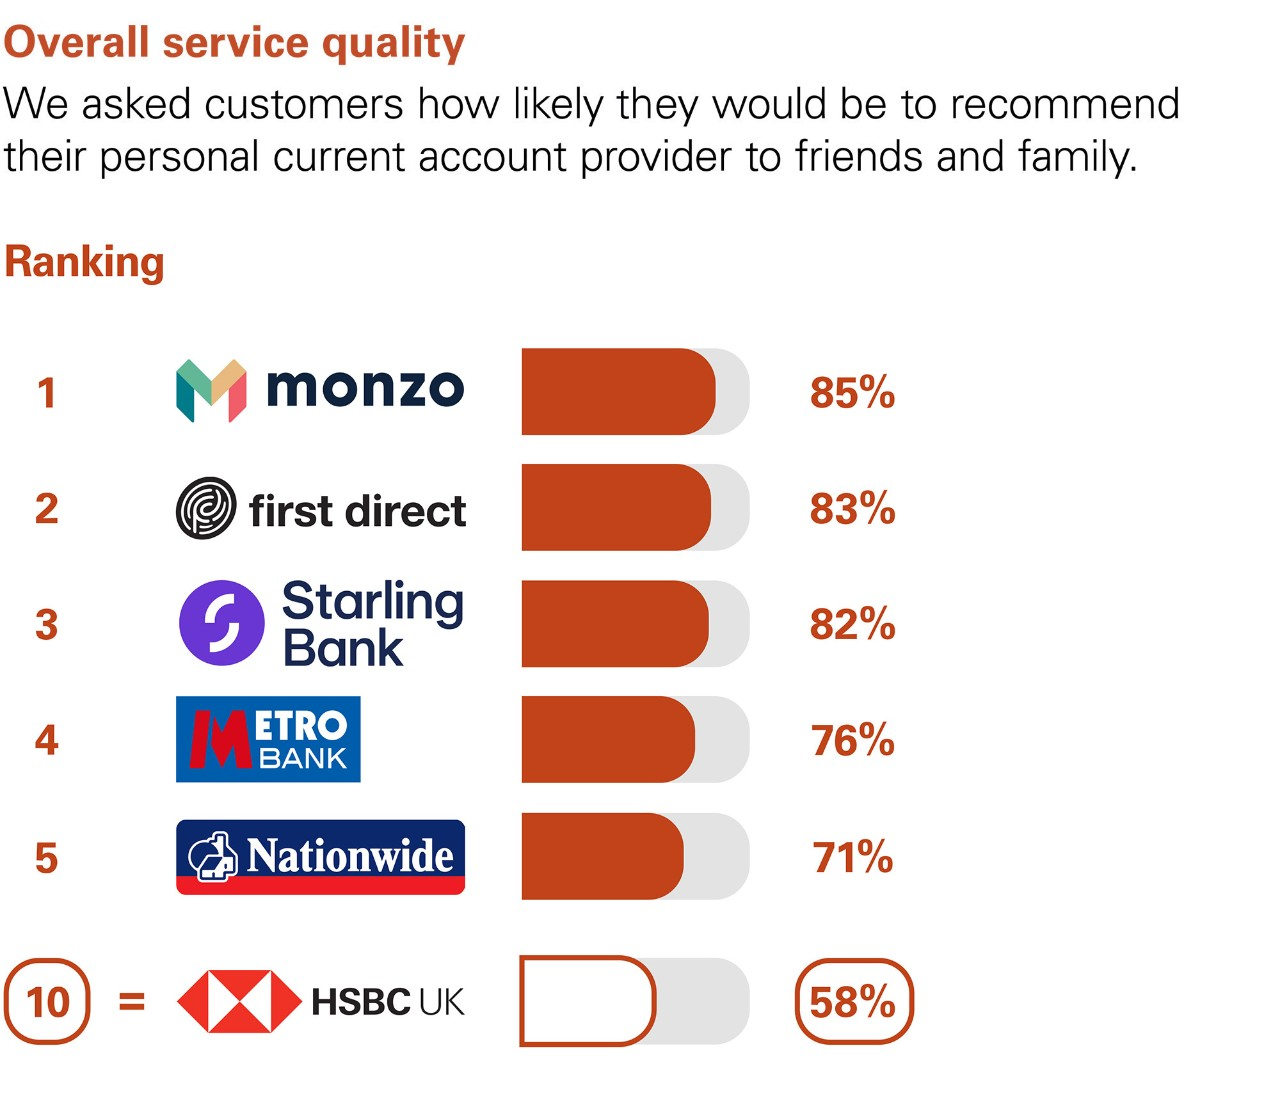 Overall Service Quality. We asked customers how likely they would be to recommend their personal current account  provider to friends and family. Ranking:  1 Monzo 85%. 2 first direct  83%. 3 Starling bank 82%. 4 Metro bank 76%. 5 Nationwide 71%. equal 10 HSBC UK 58%.